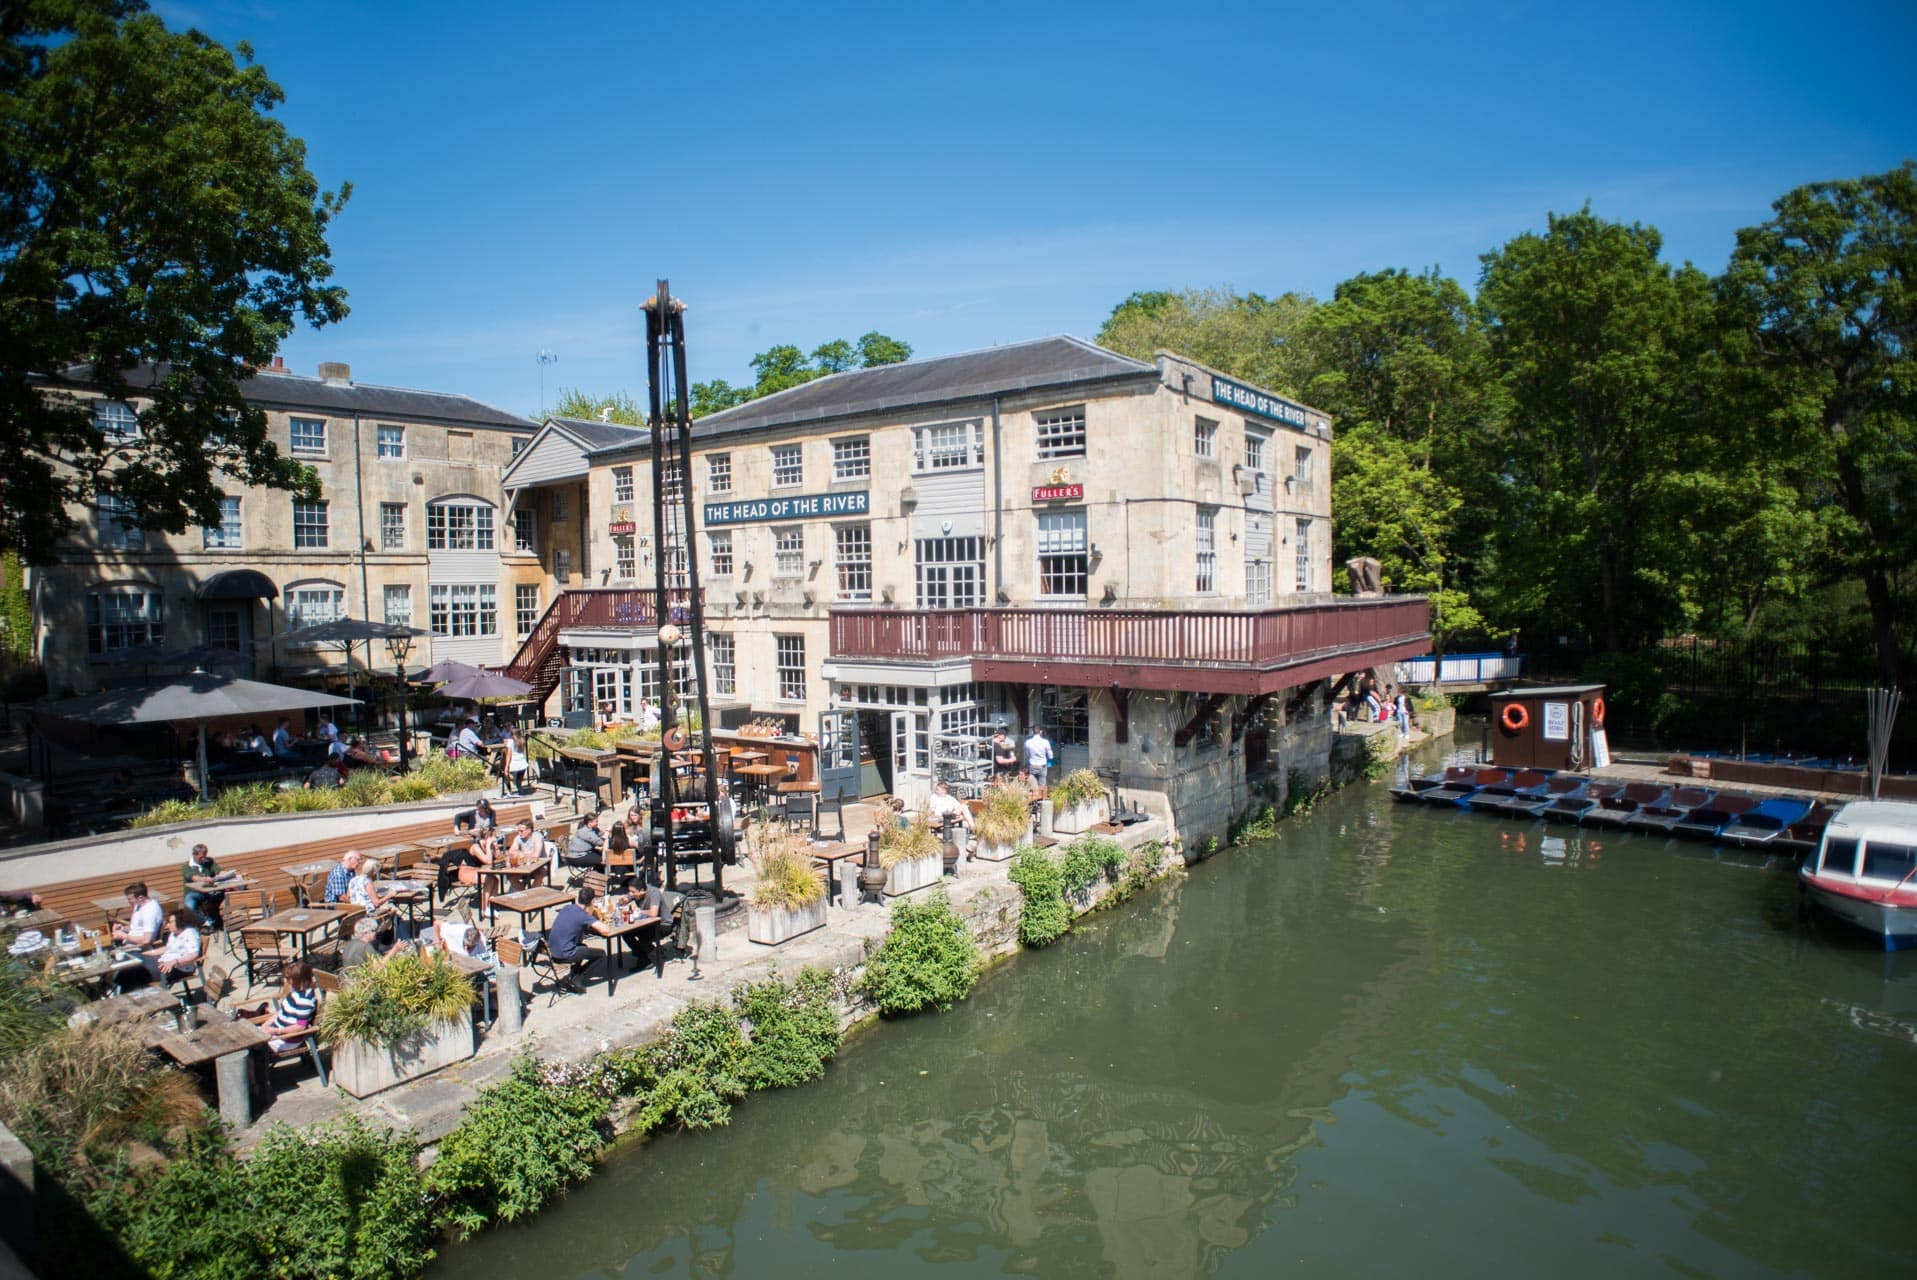 The Head of The River pub in Oxford